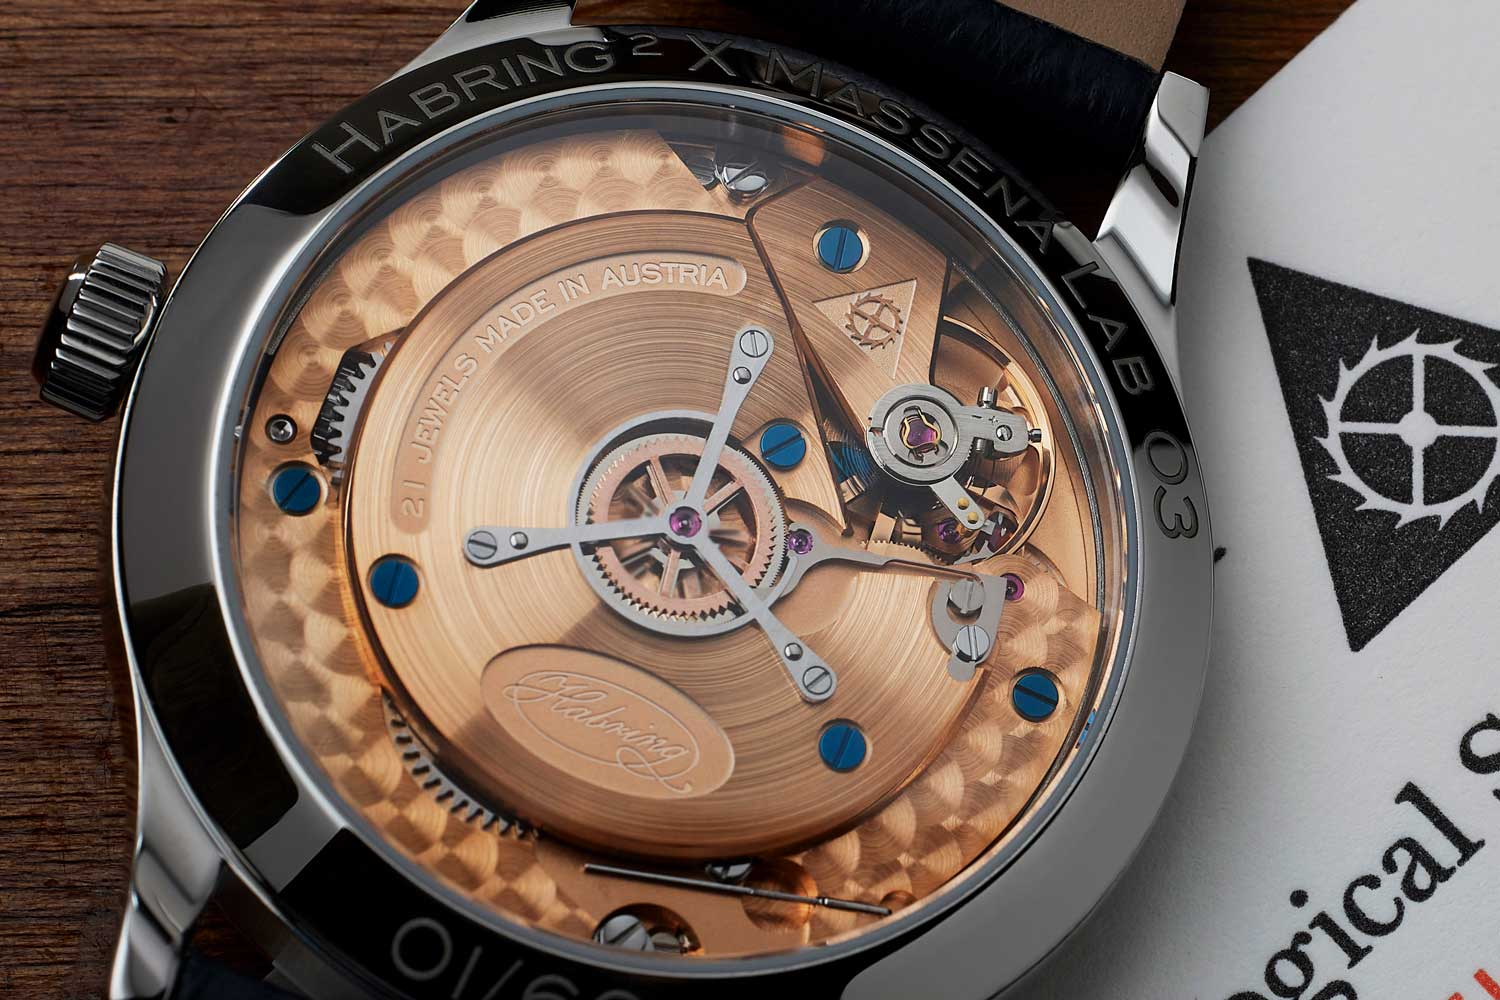 The watch is powered by Habring2's own A11MS, a hand-wound calibre with 48 hours of wind and dead-beats seconds.